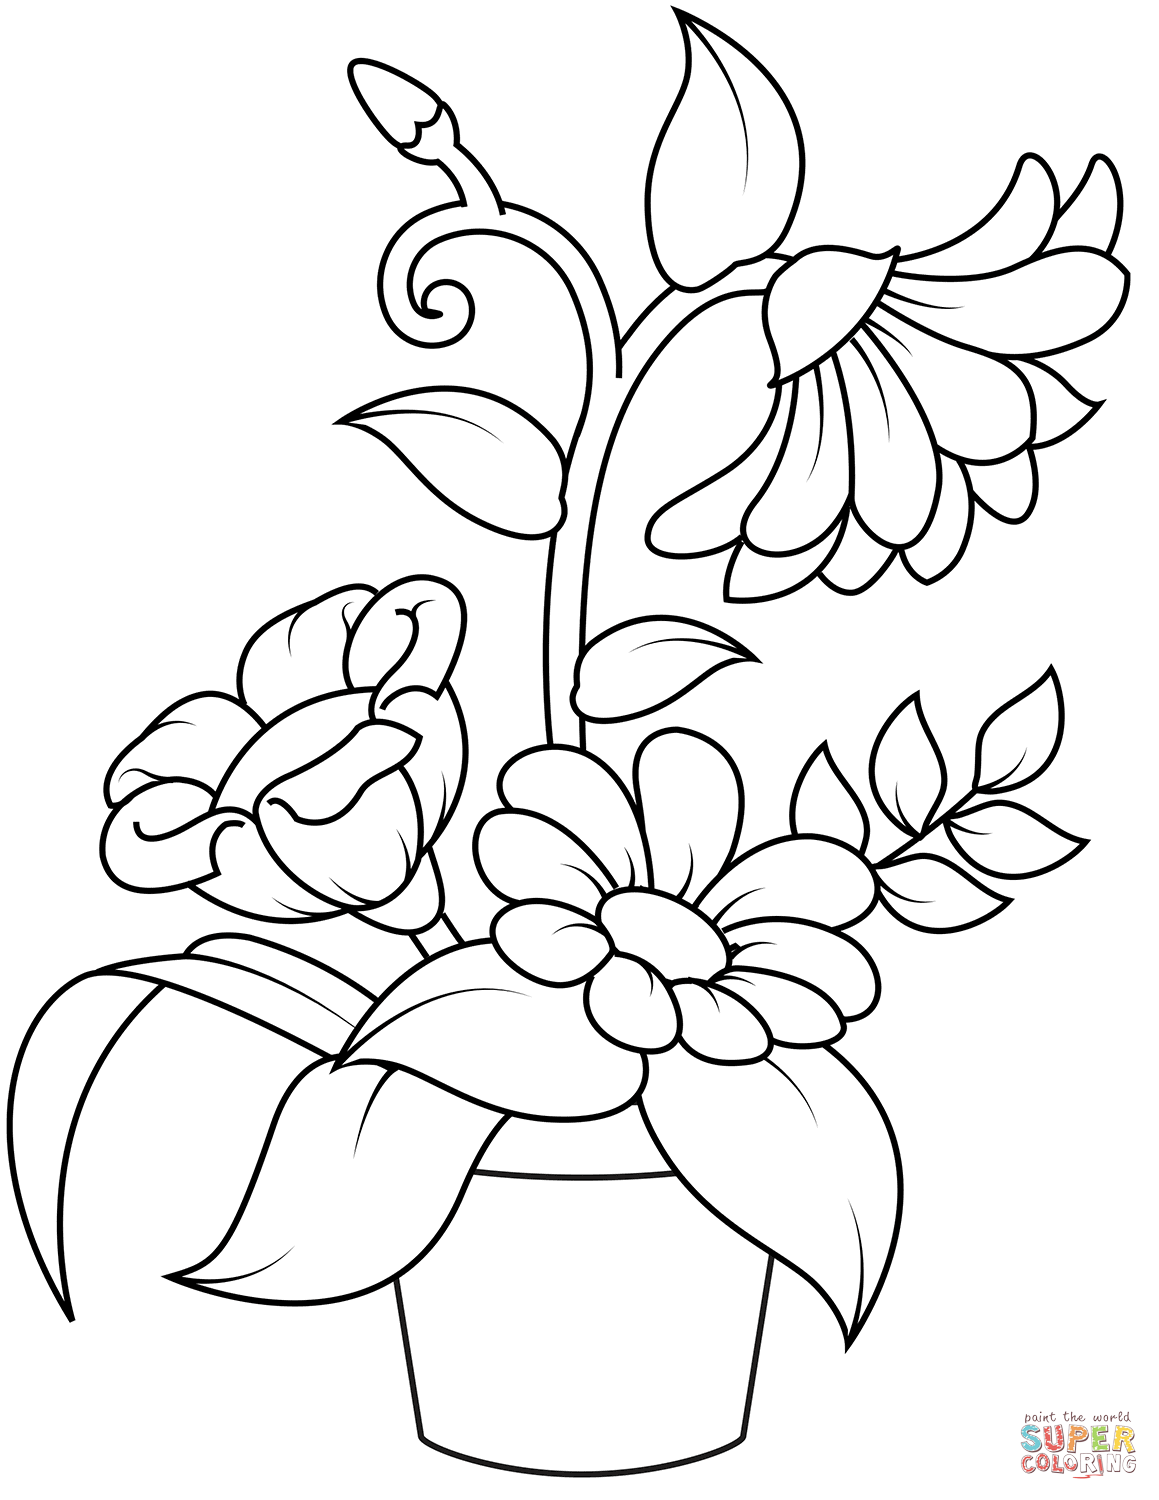 Flower Pots Coloring Pages  Flower coloring pages, Printable